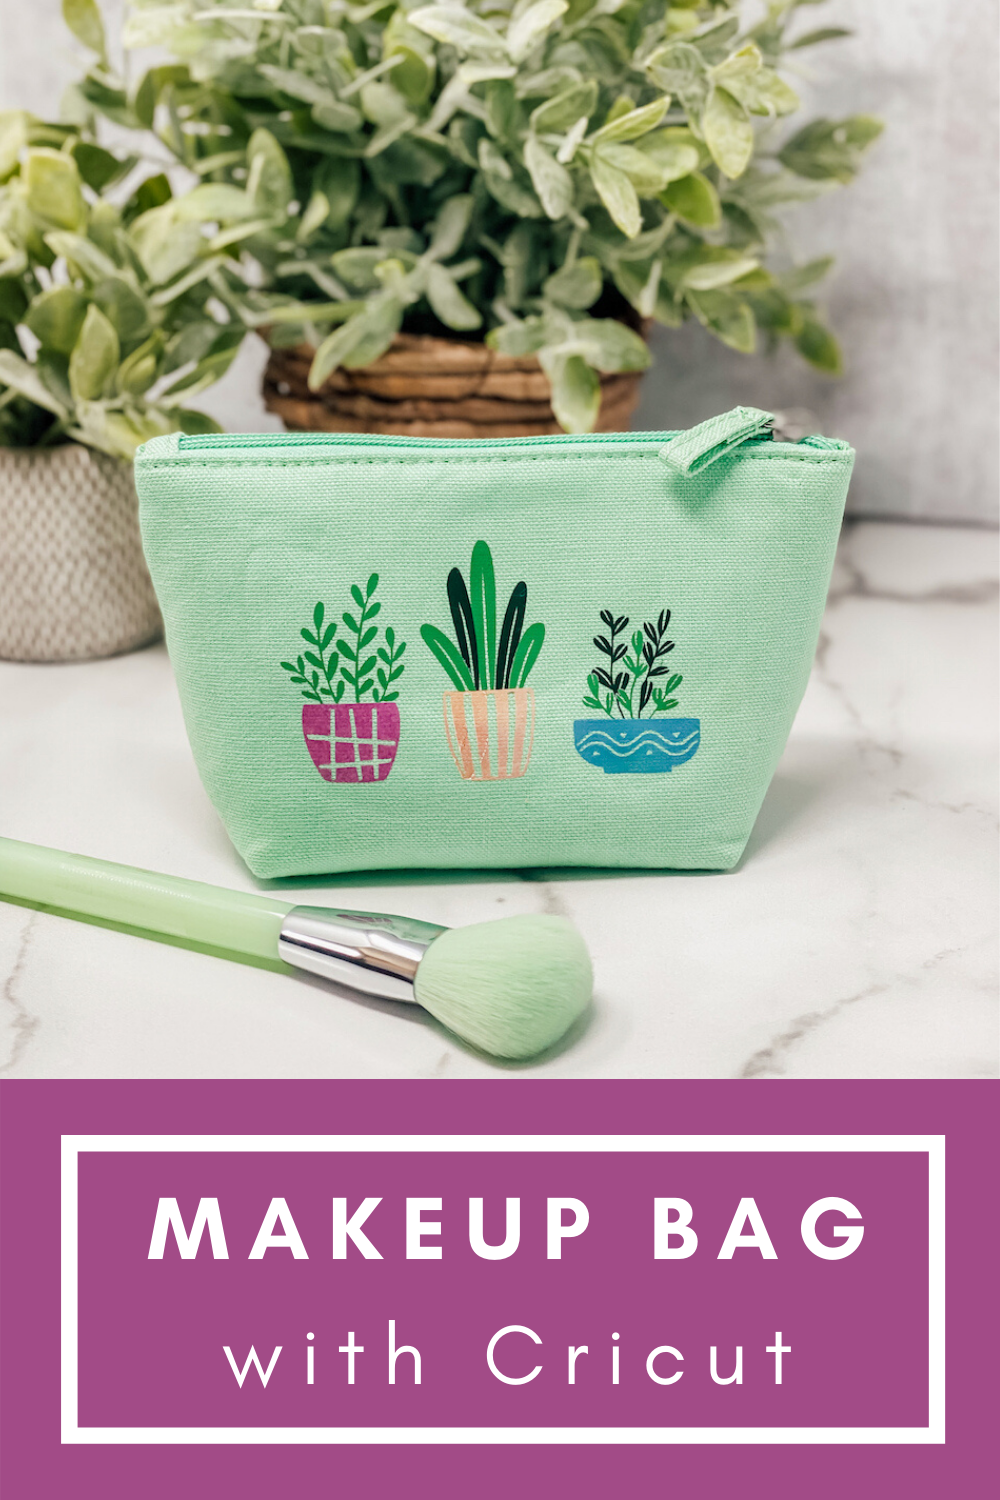 Makeup Bag with Cricut